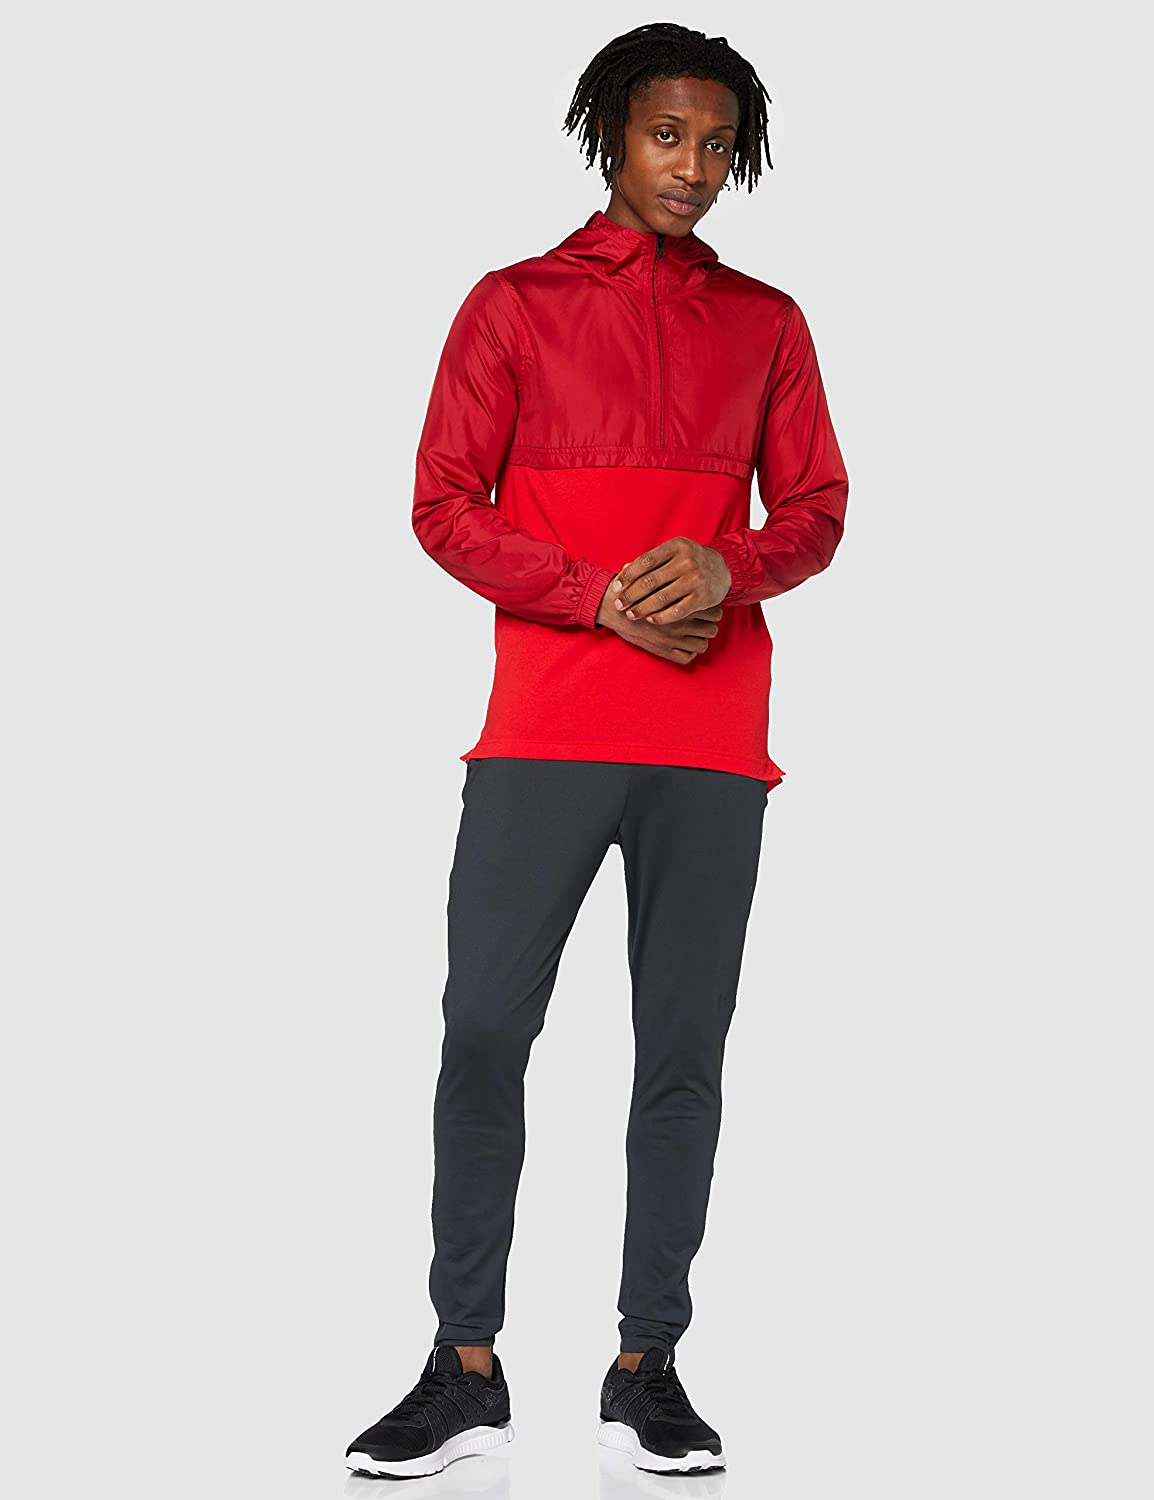 Under Armour Men's Challenger Ii Men's Jogging Bottoms Tracksuit Bottoms for Men Made of 4-Way Stretch Fabric, Breathable and Light Skinny Joggers